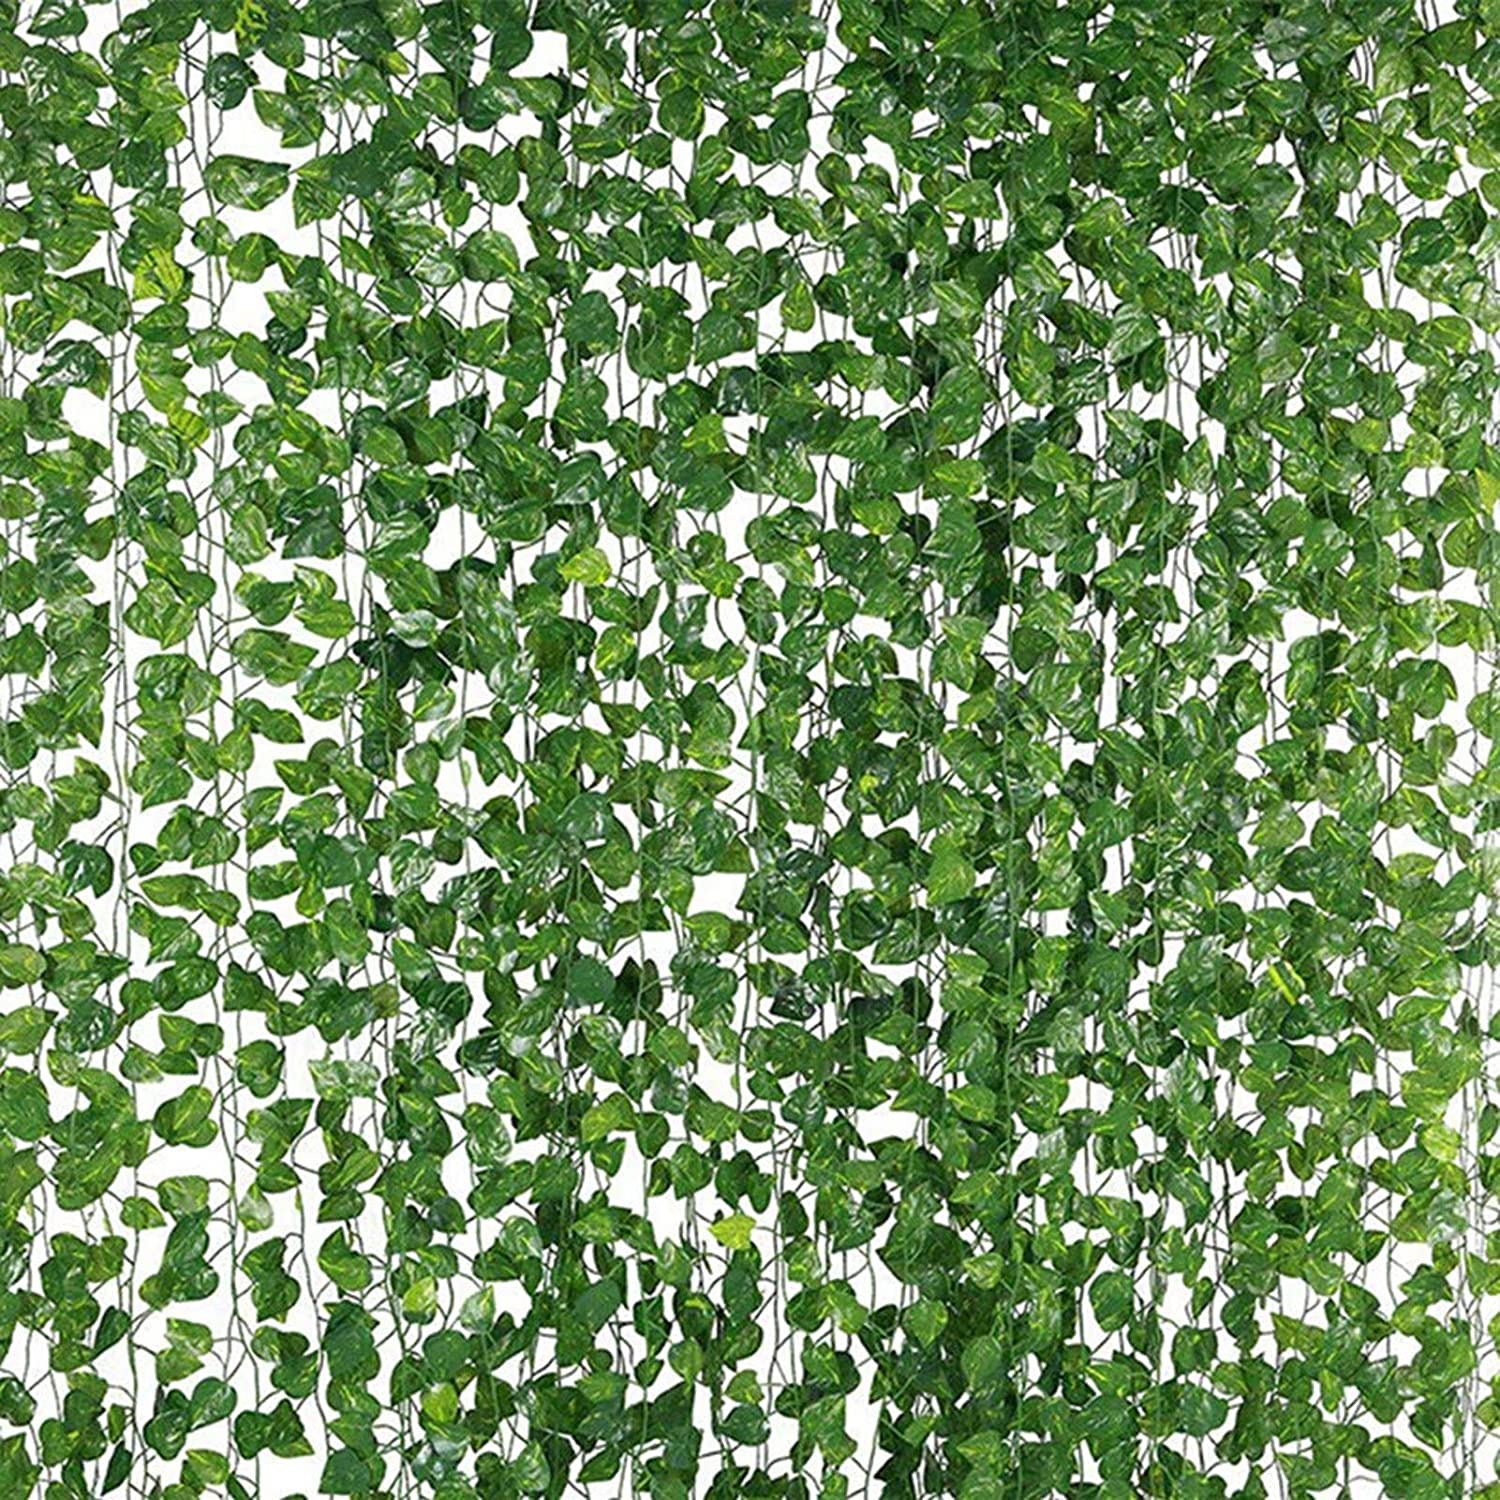 NEW RUICHENG Lvy Garland Vine Hanging Plants Artificial Plant Fake Leaf Lvy Artificial Foliage Vines Garland 12 Pack Set 25.2M 840-960 Pcs Green Leaves Plastic Plants for Garden Wedding Wall Decor